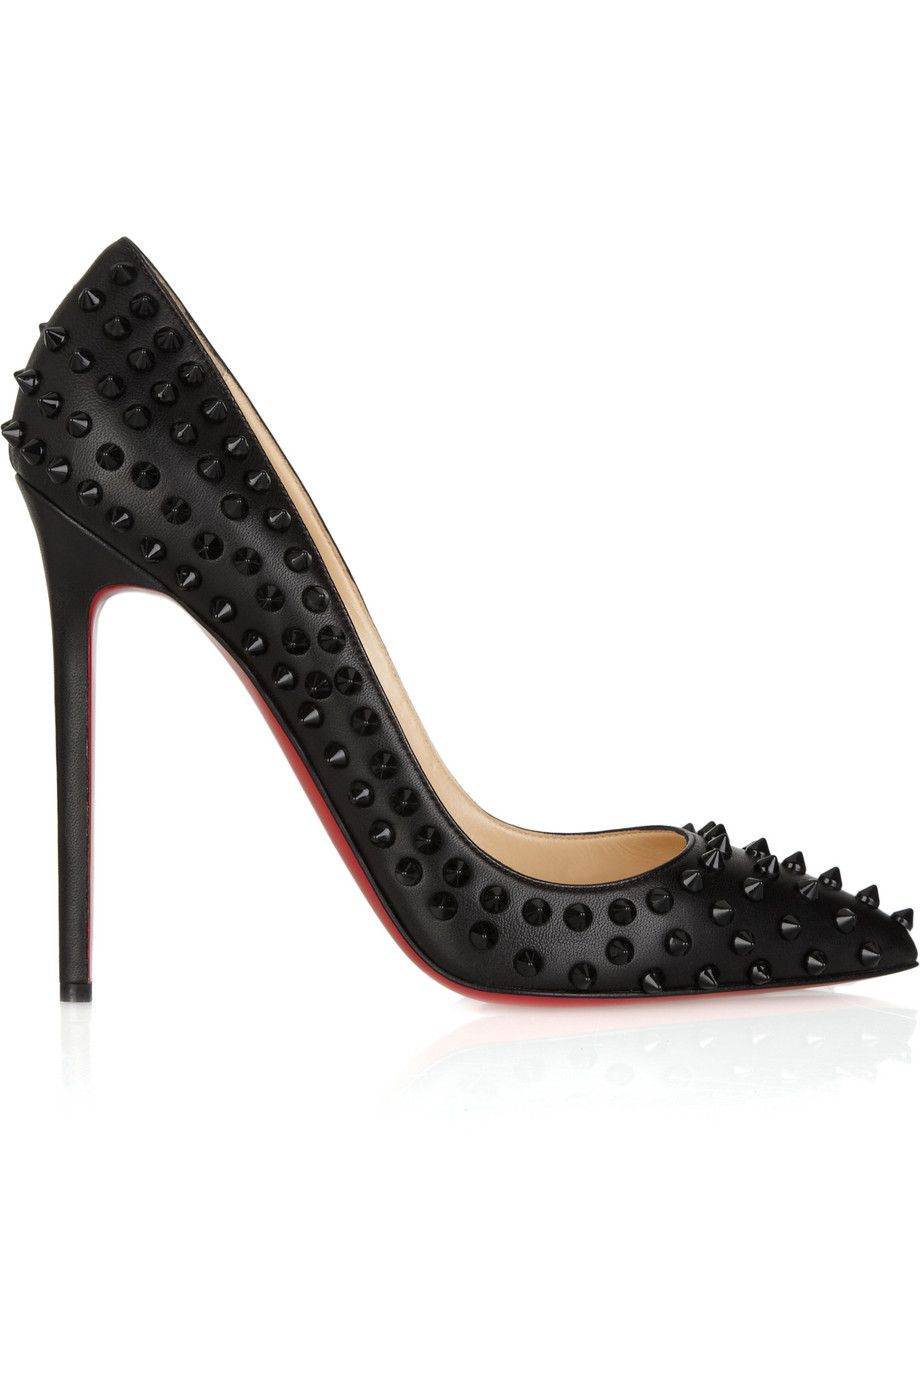 CHRISTIAN LOUBOUTIN Pigalle Spikes 120 studded leather pumps (Net-A-Porter)